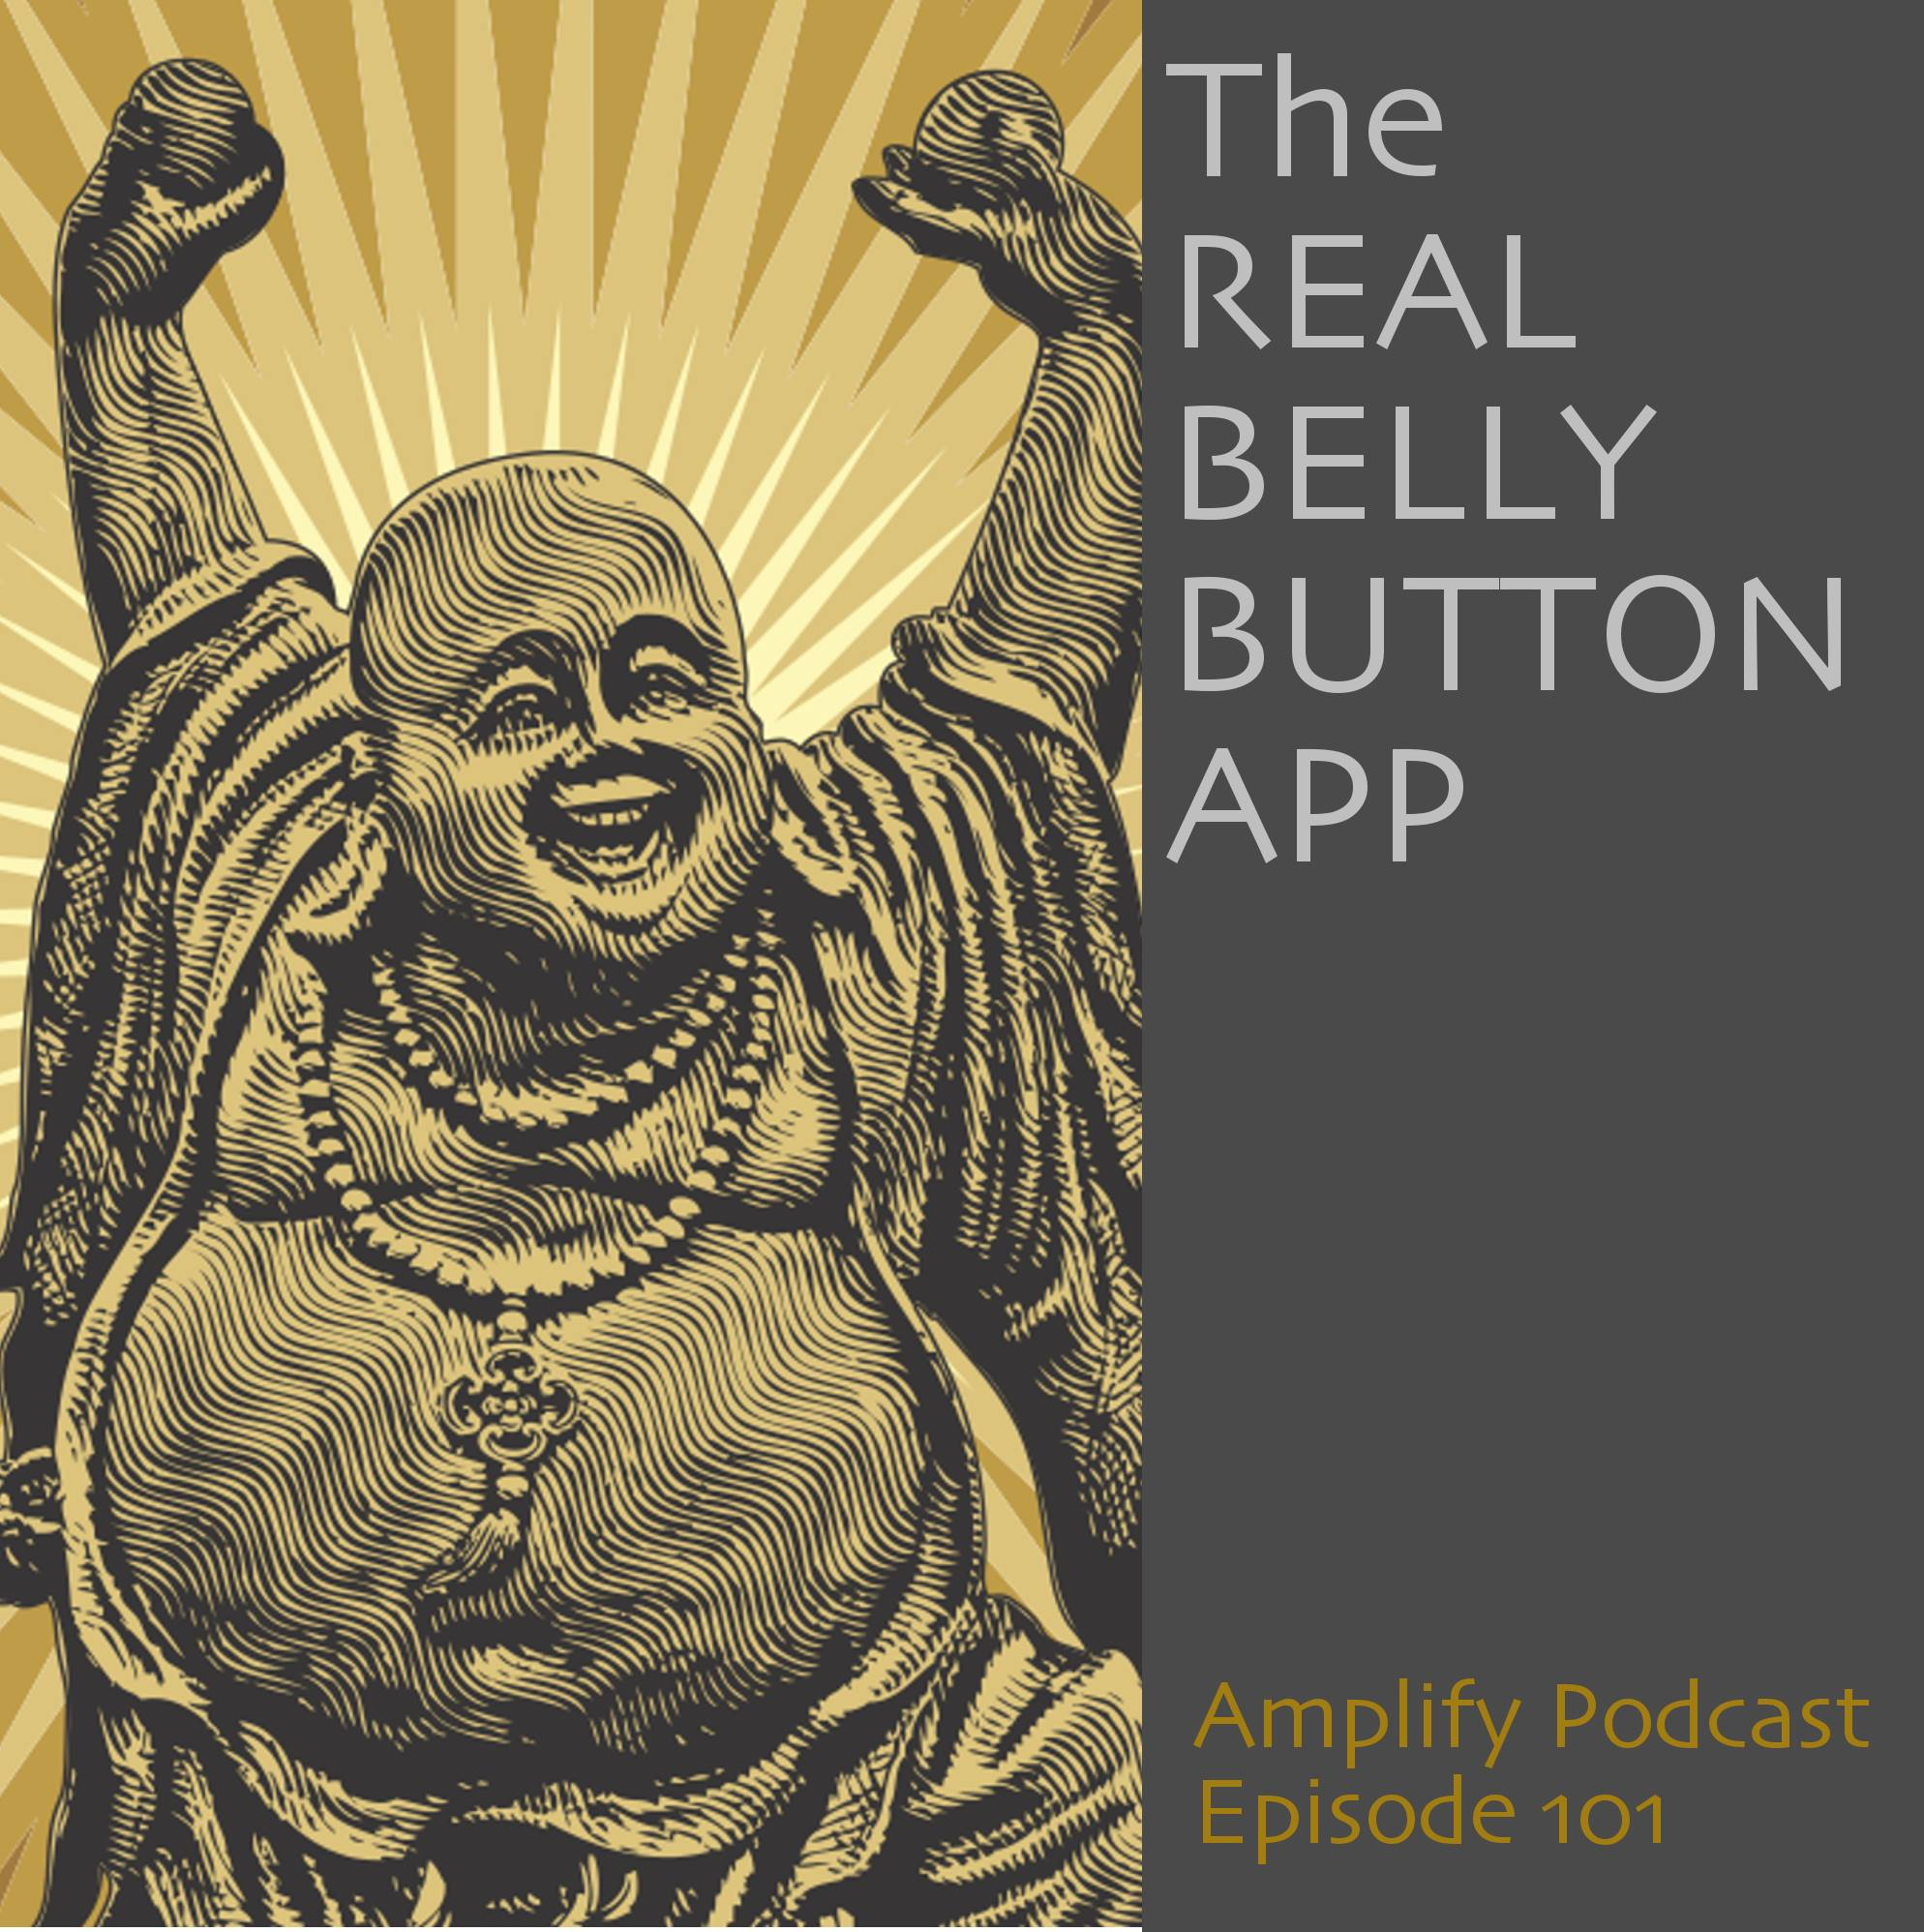 Amplify Podcast Episode 101 - The Real Belly Button App